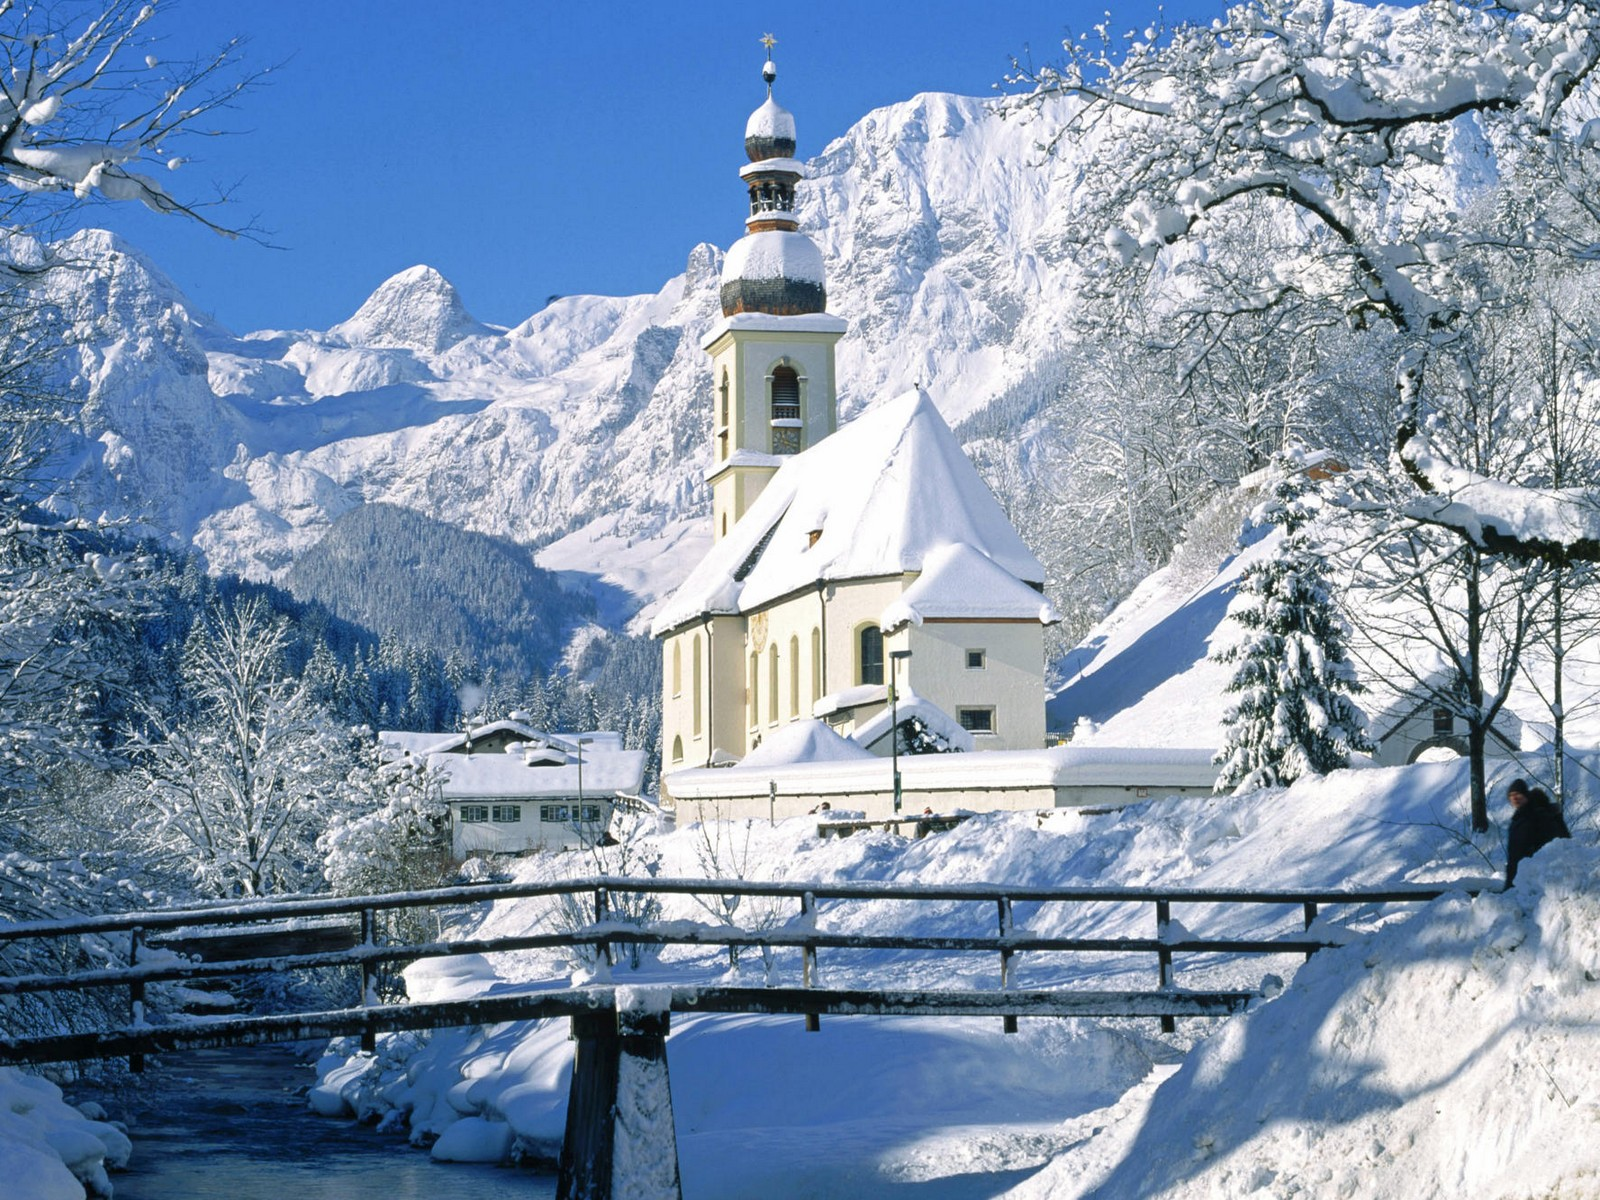 Must see   Wallpaper Home Screen Snow - Church-in-Snow  Pic_236013.jpg